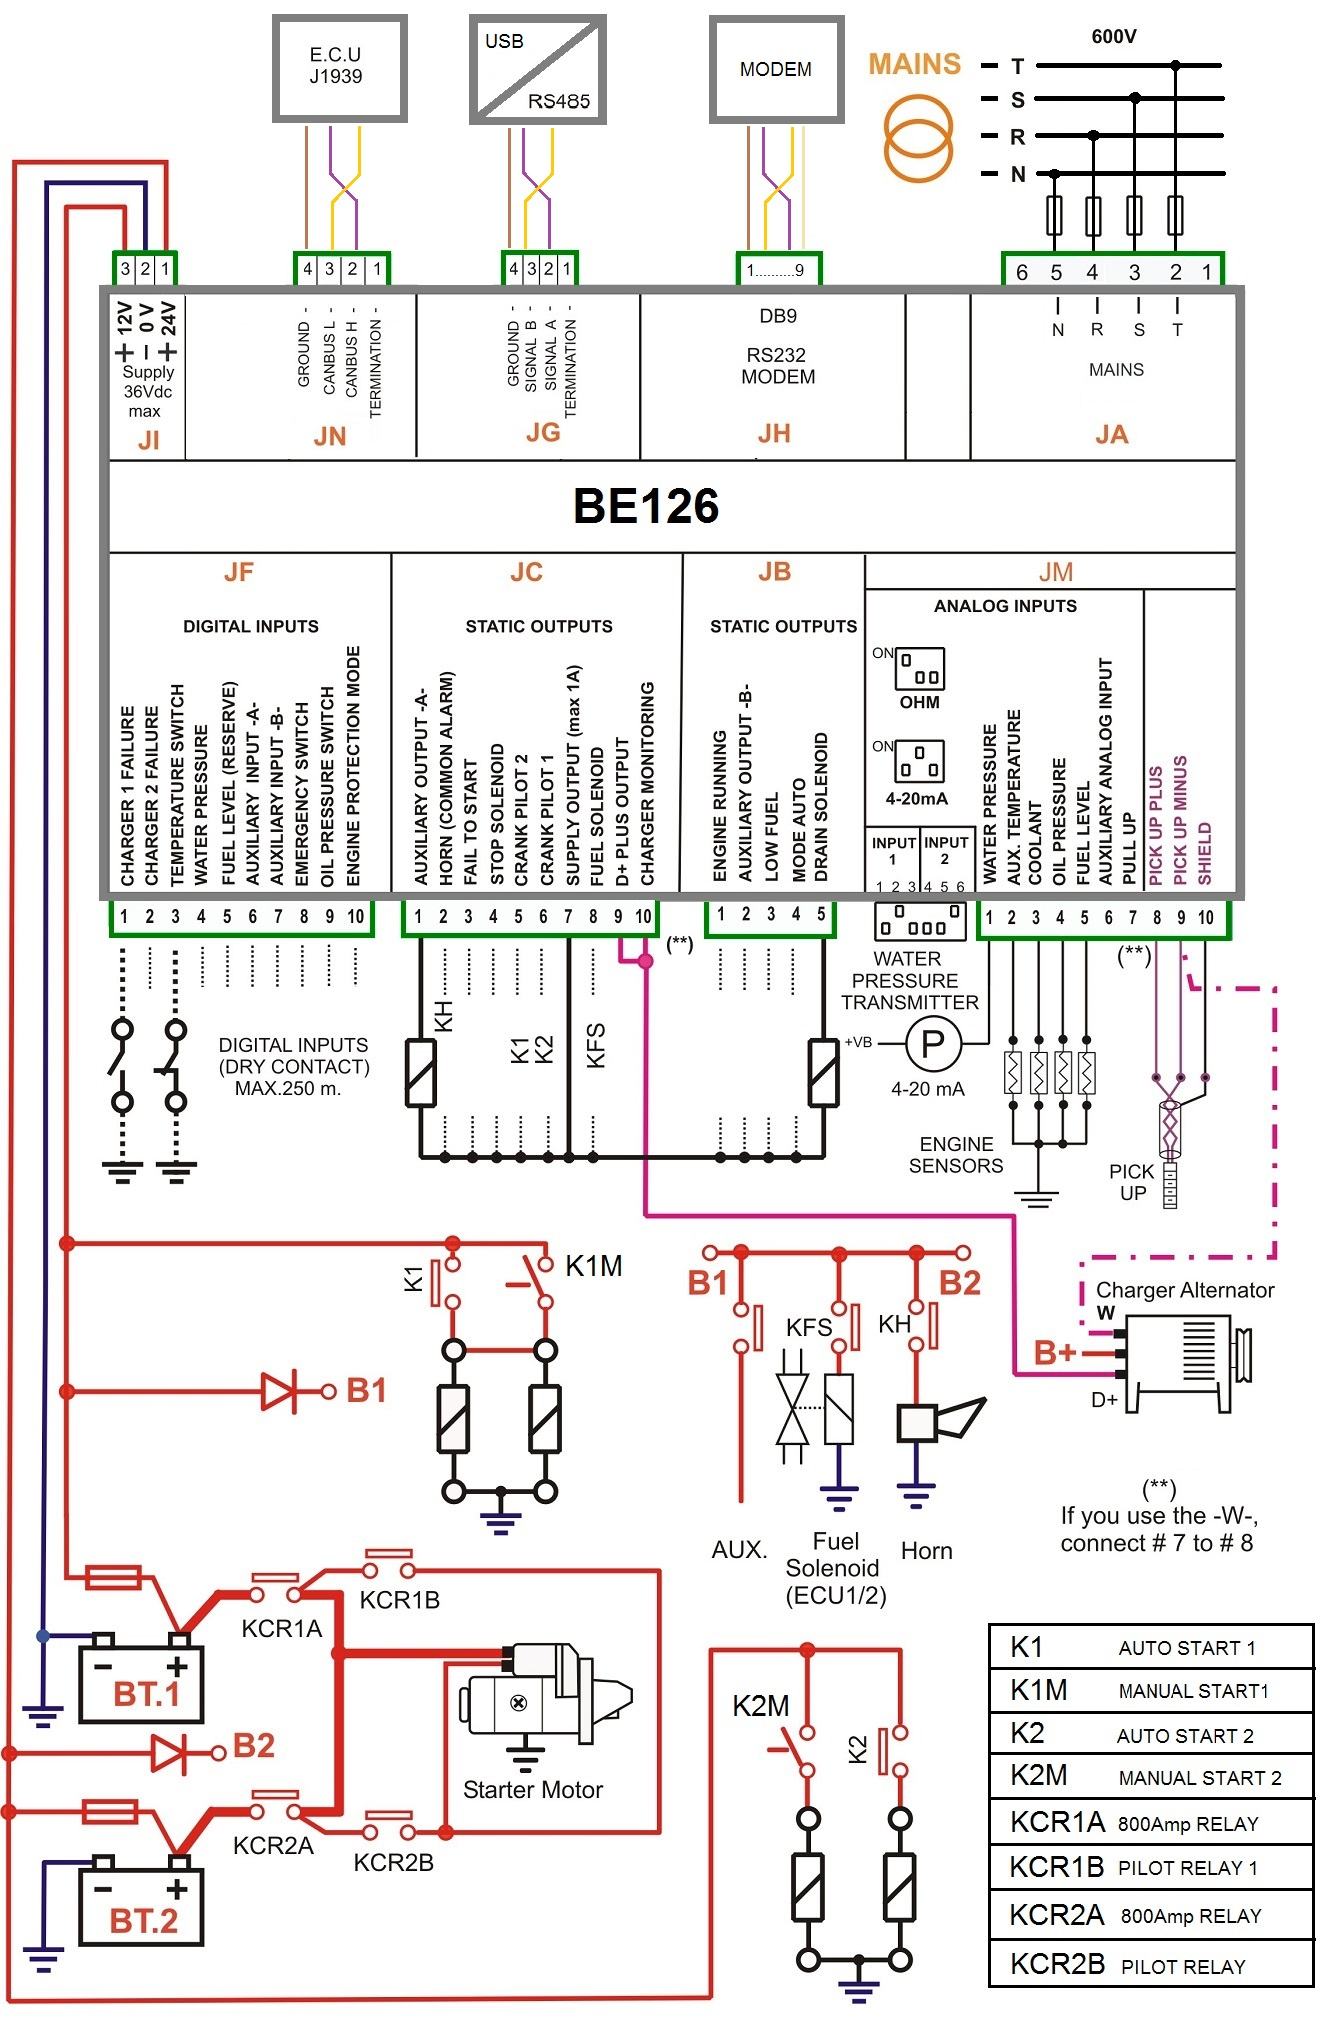 NFPA20 fire pump controller wiring diagram fire pump controller wiring diagram genset controller electrical control wiring diagrams at mr168.co